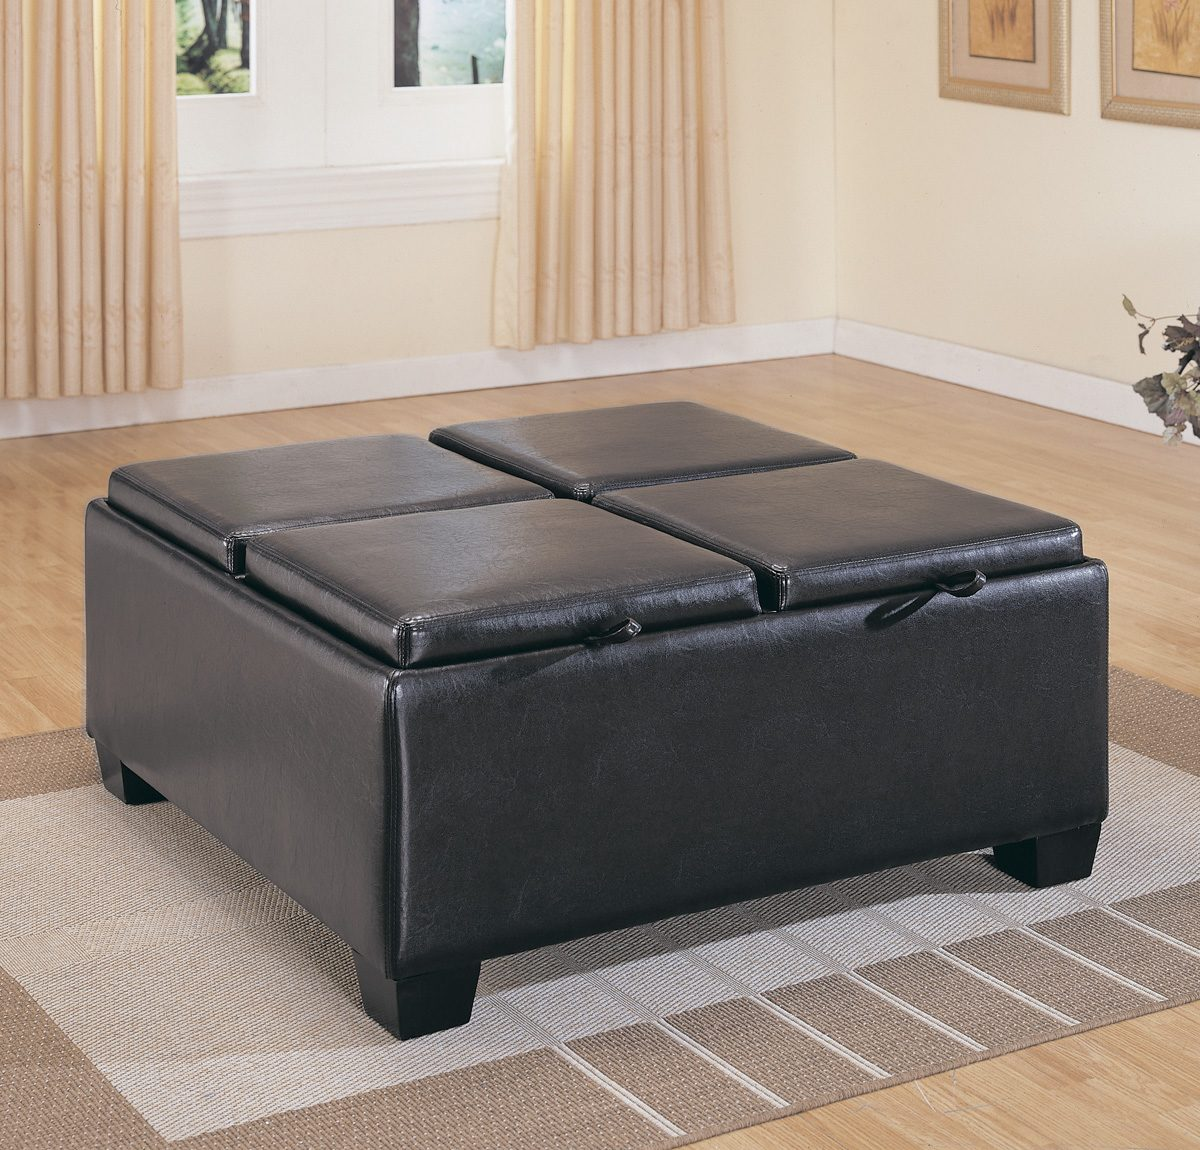 Ottoman Coffee Table Square | Large Square Coffee Table Ottoman | Large Ottoman Coffee Table